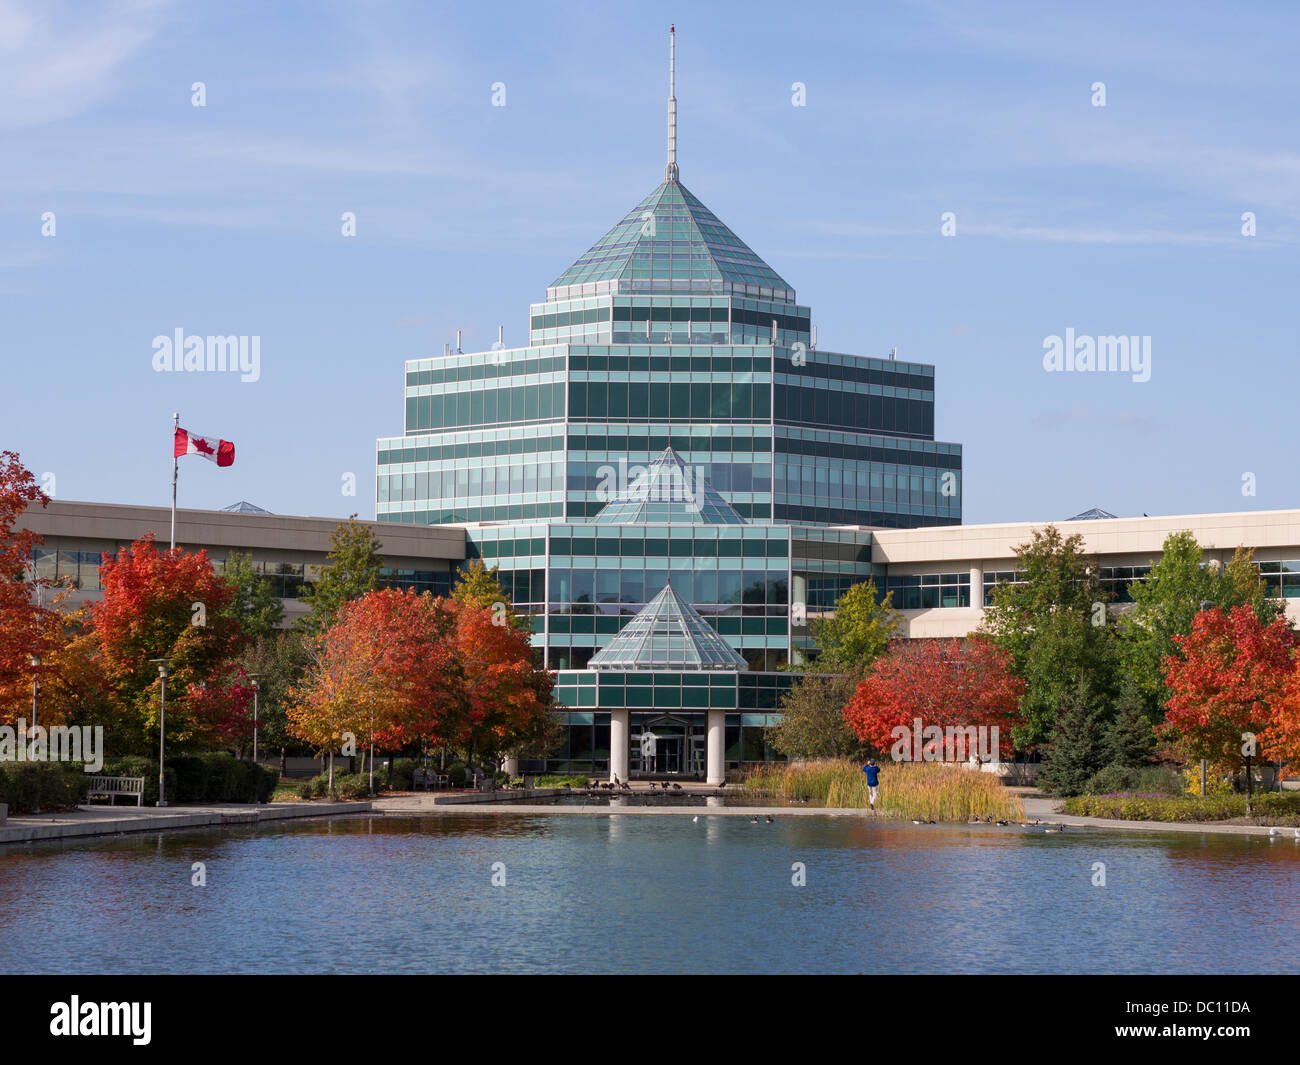 Atrium and reflecting pool at the Nortel Campus. The central atrium with its iconic glowing beacon surrounded by - Stock Image